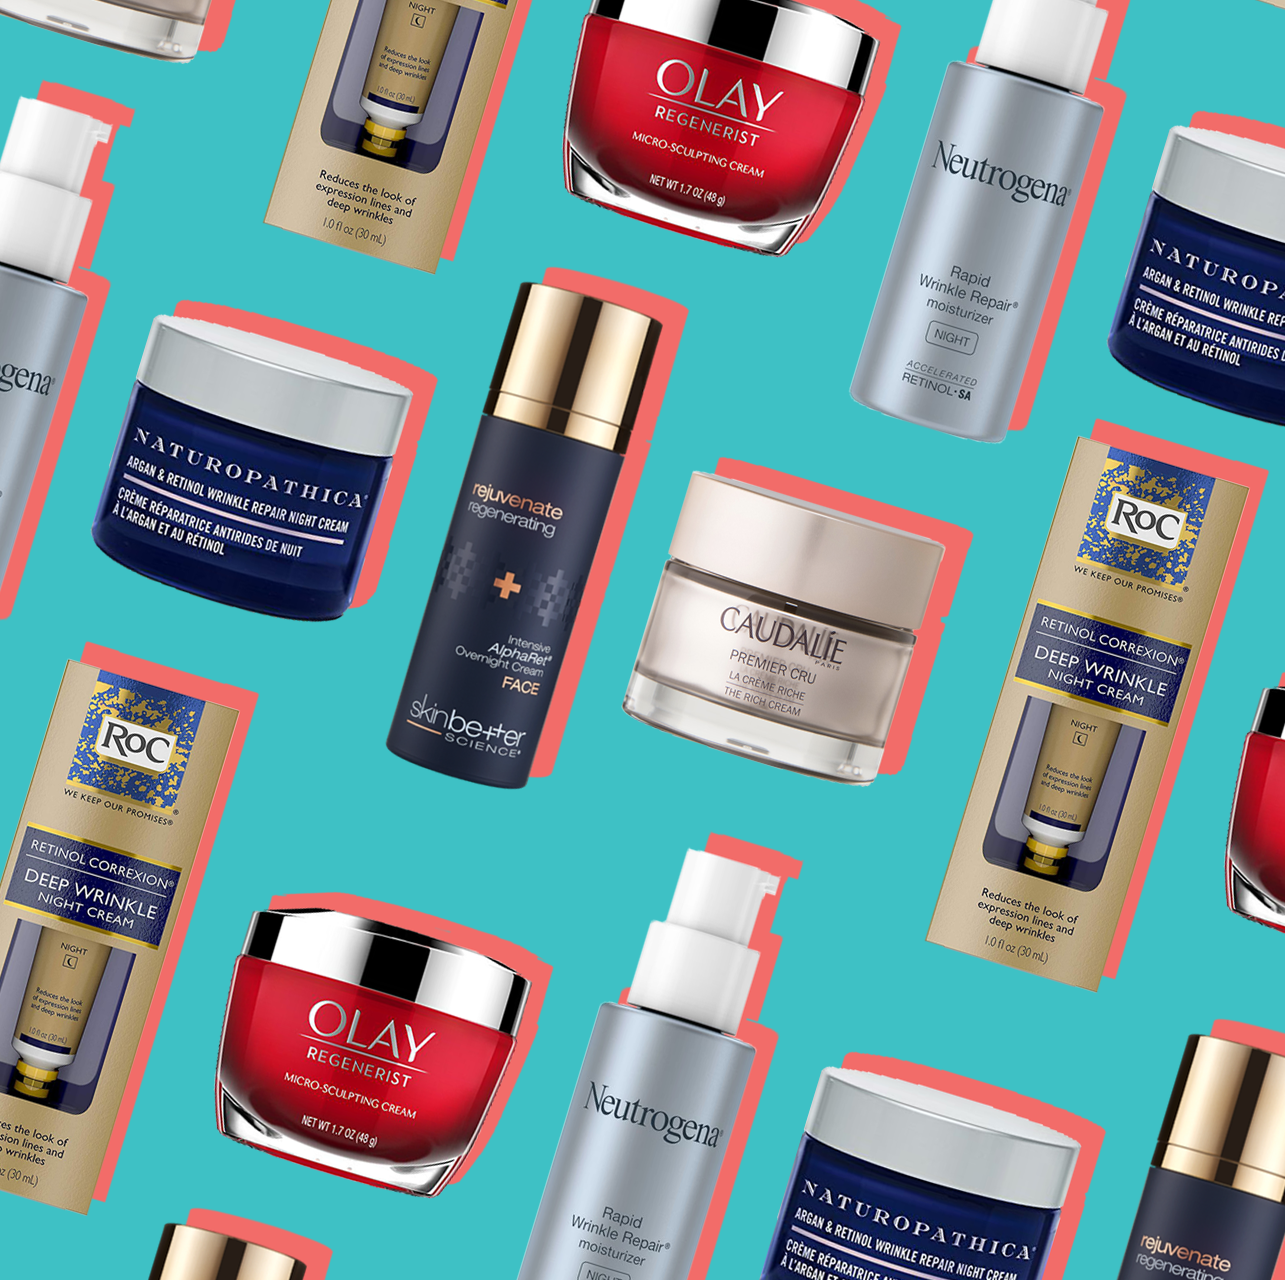 13 Best Night Creams for Every Skin Type, According to Dermatologists